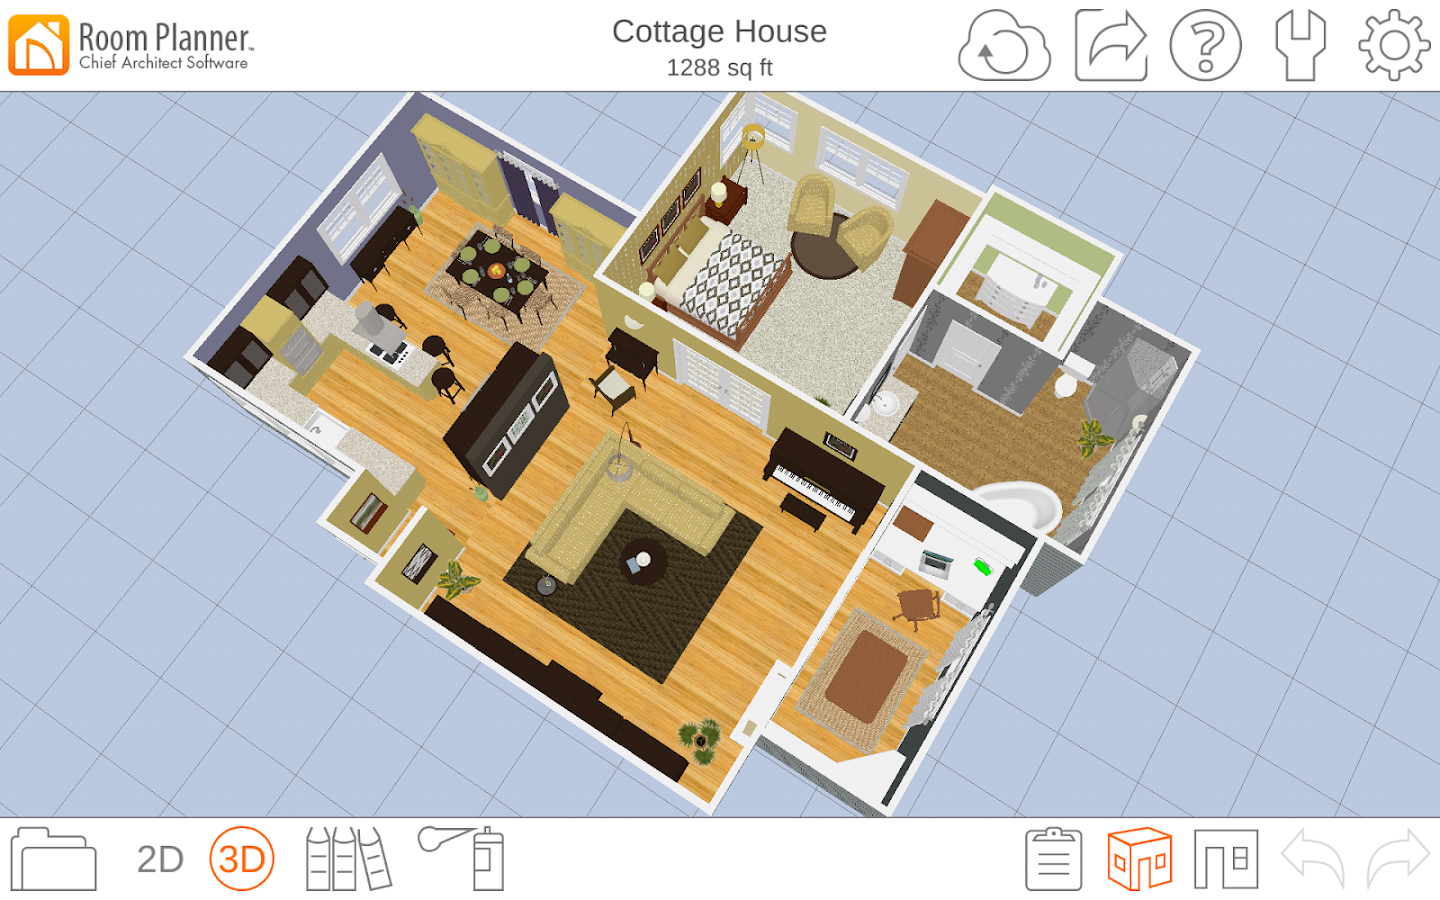 Room planner home design android apps on google play Free home design app